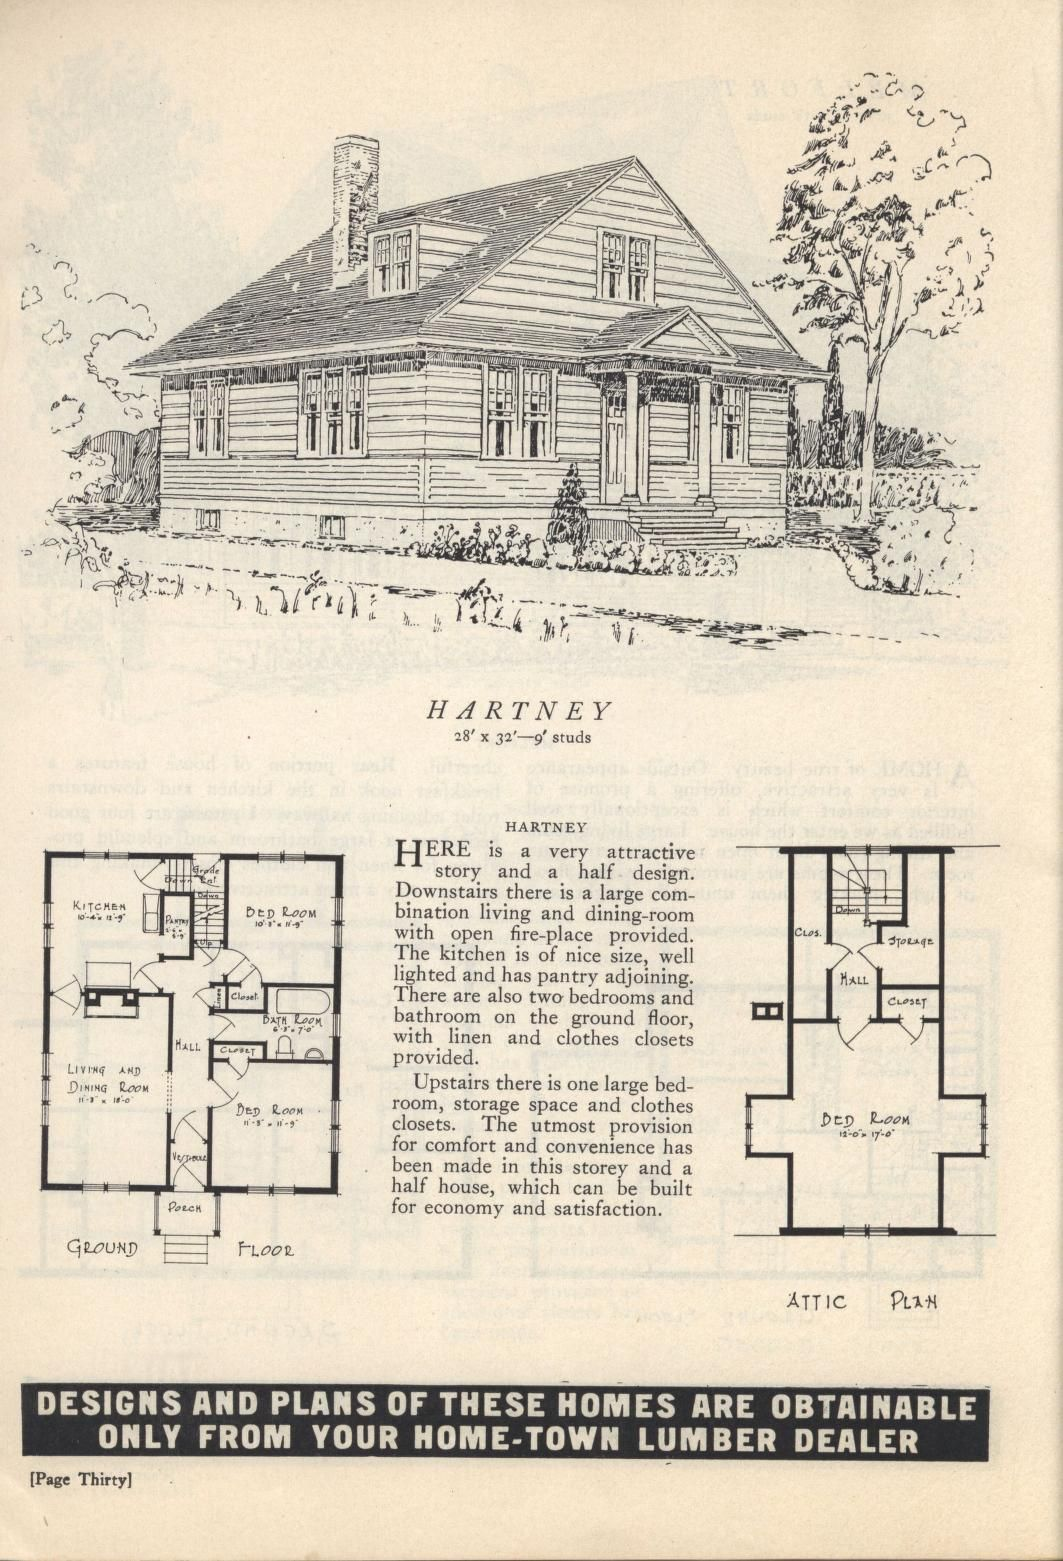 Plans For The Home Builder Western Retail Lumberman S Assoc Free Download Borrow And Streaming Internet Archive House Plans Vintage House Plans Western Homes